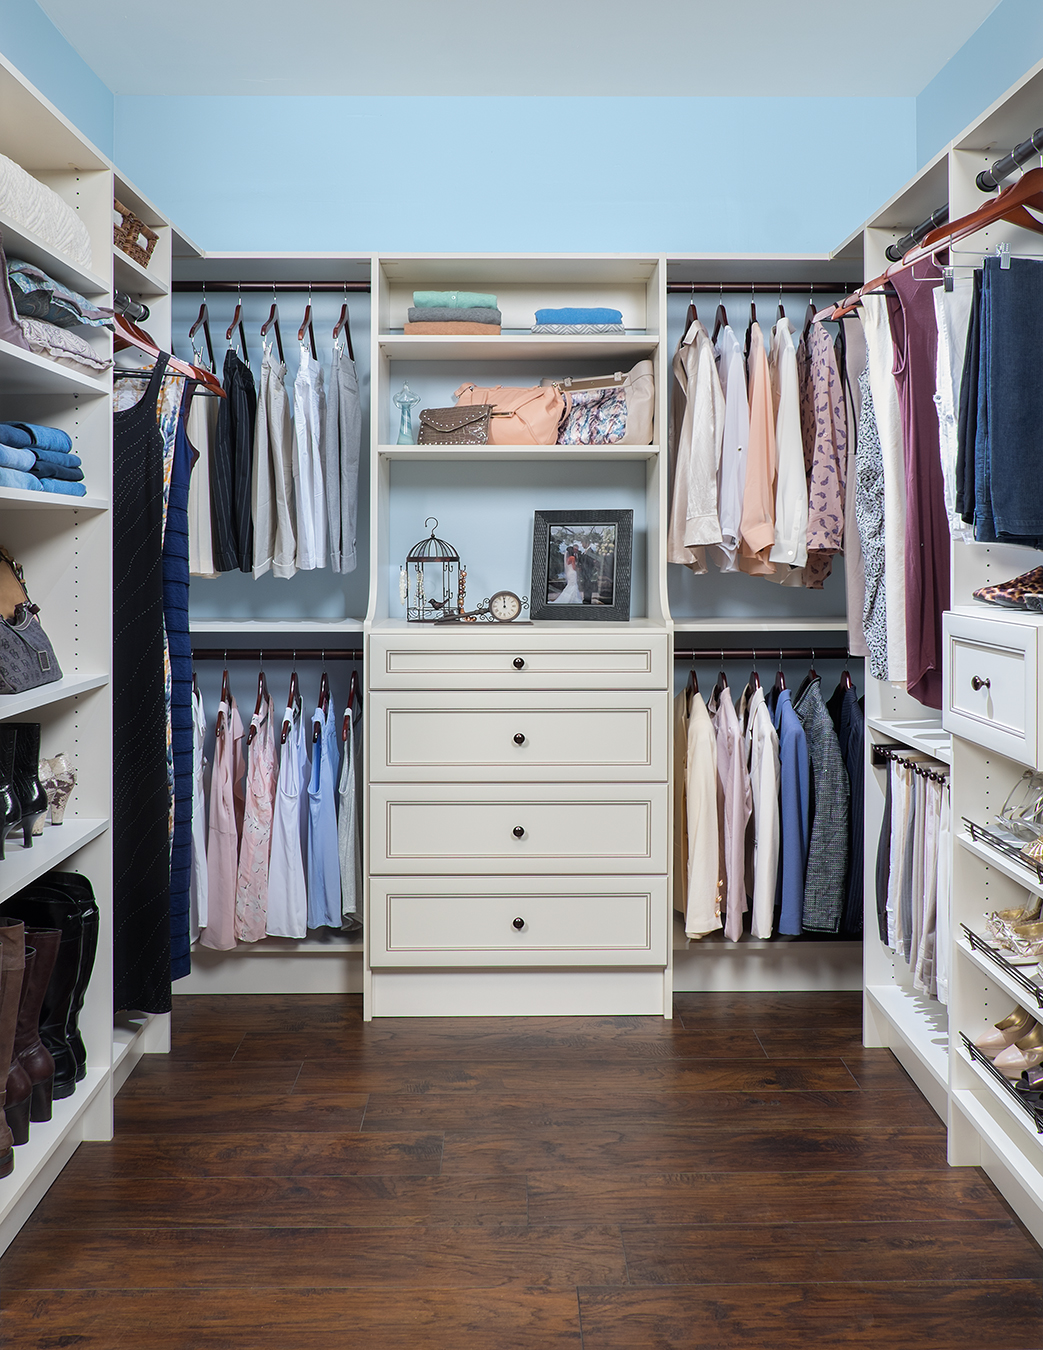 Walk in closet design in michigan custom closet installation - Pictures of walk in closets ...